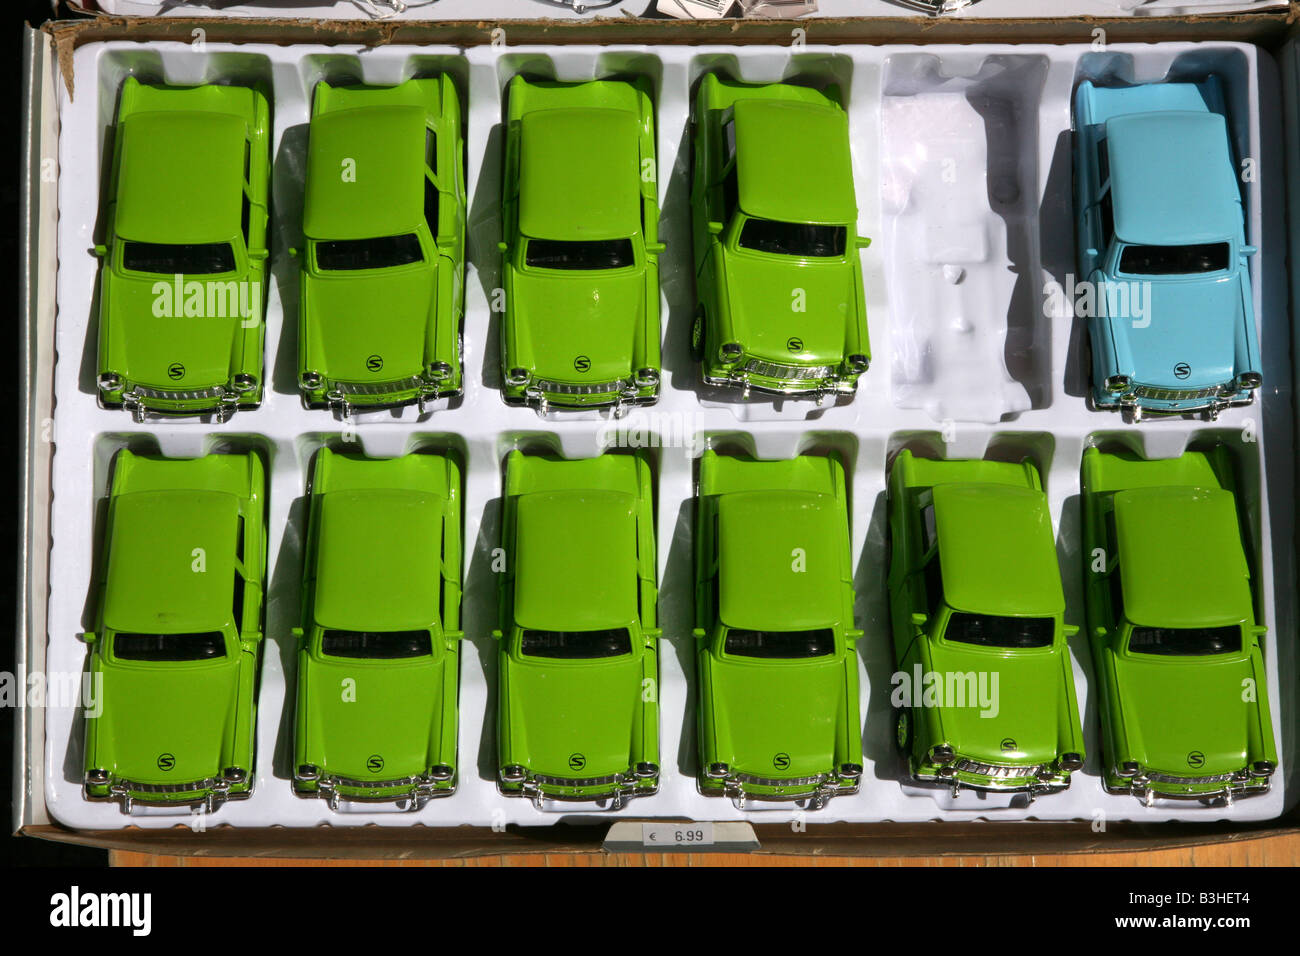 Trabant toy cars in the street market near the Check point Charlie in Berlin, Germany - Stock Image